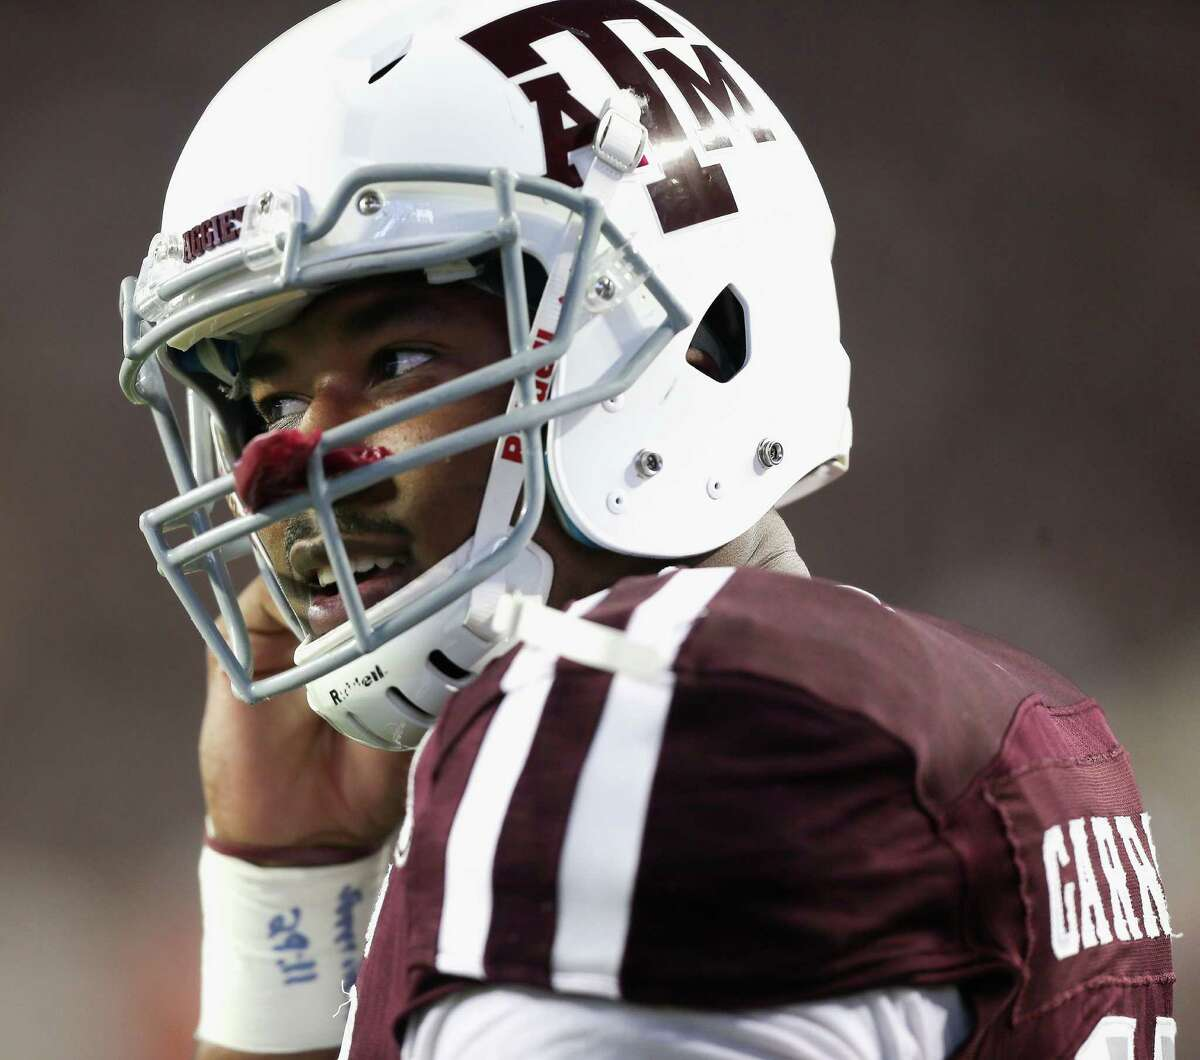 COLLEGE STATION, TX - NOVEMBER 12: Myles Garrett #15 of the Texas A&M Aggies warms up before playing the Mississippi Rebels at Kyle Field on November 12, 2016 in College Station, Texas.